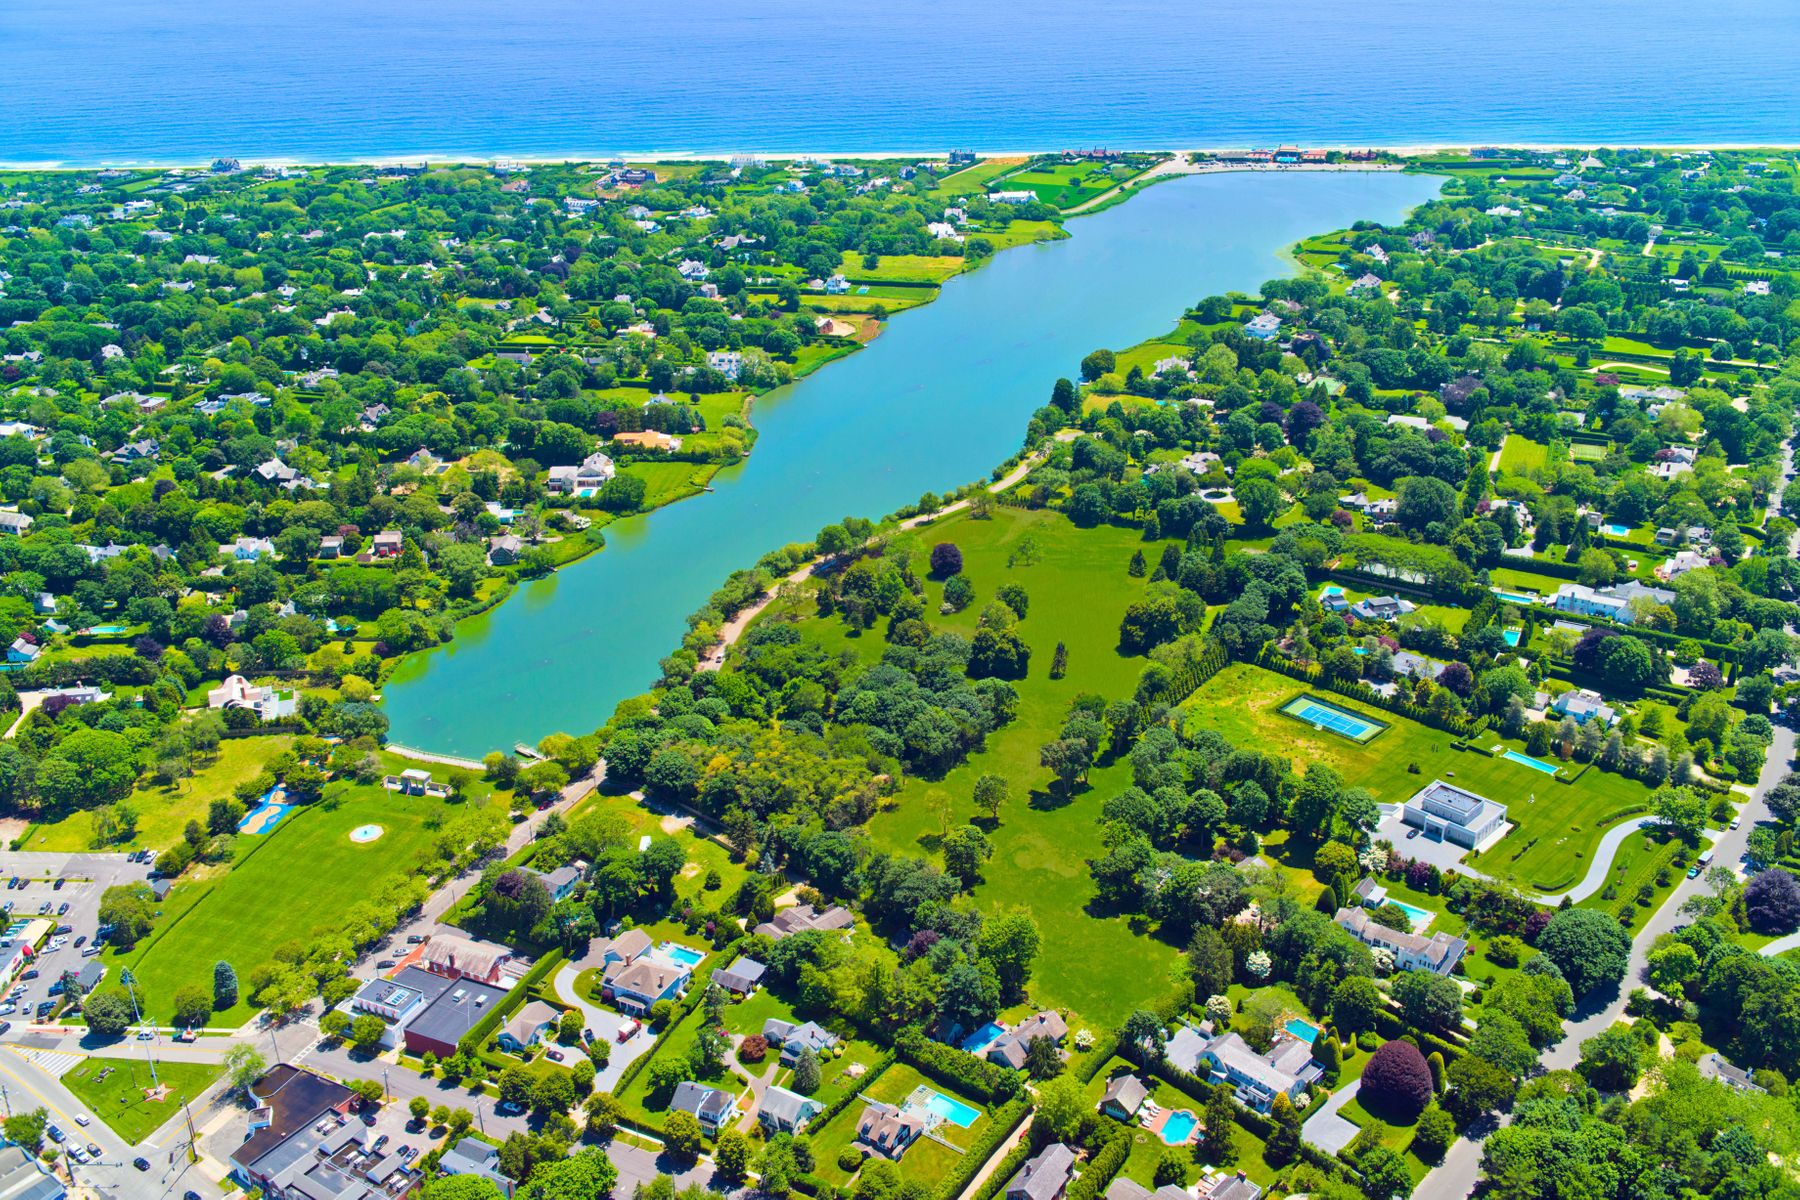 Single Family Homes for Active at 137 & 153 Pond Lane 137 And 153 Pond Lane, Lots 4 And 5 Southampton, New York 11968 United States